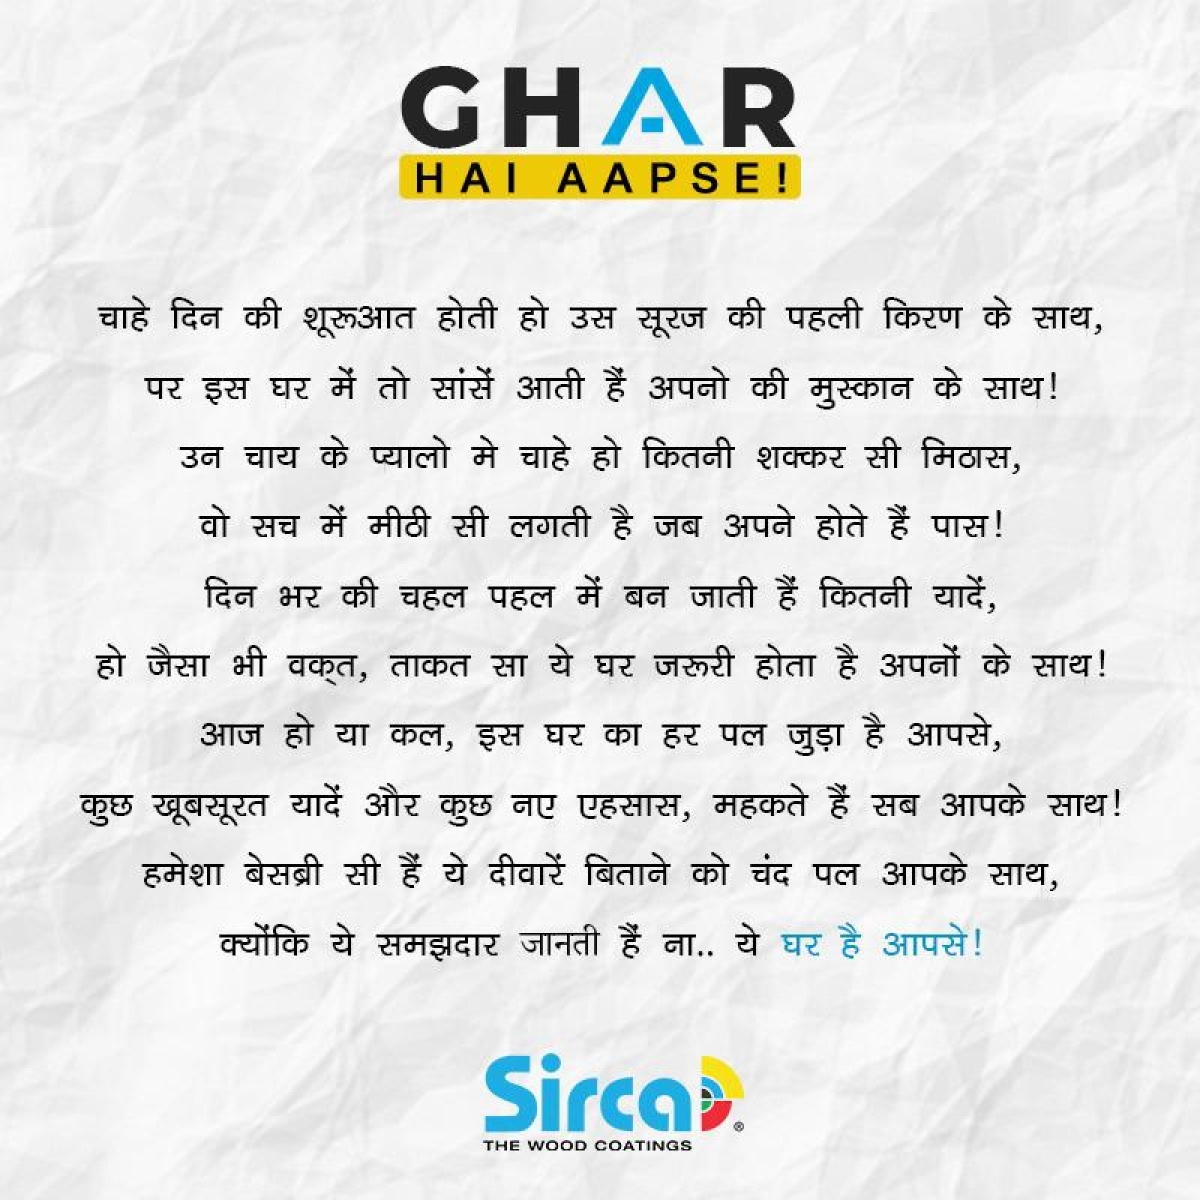 Sirca Paints India launches new communication 'Ghar Hai Aapse'